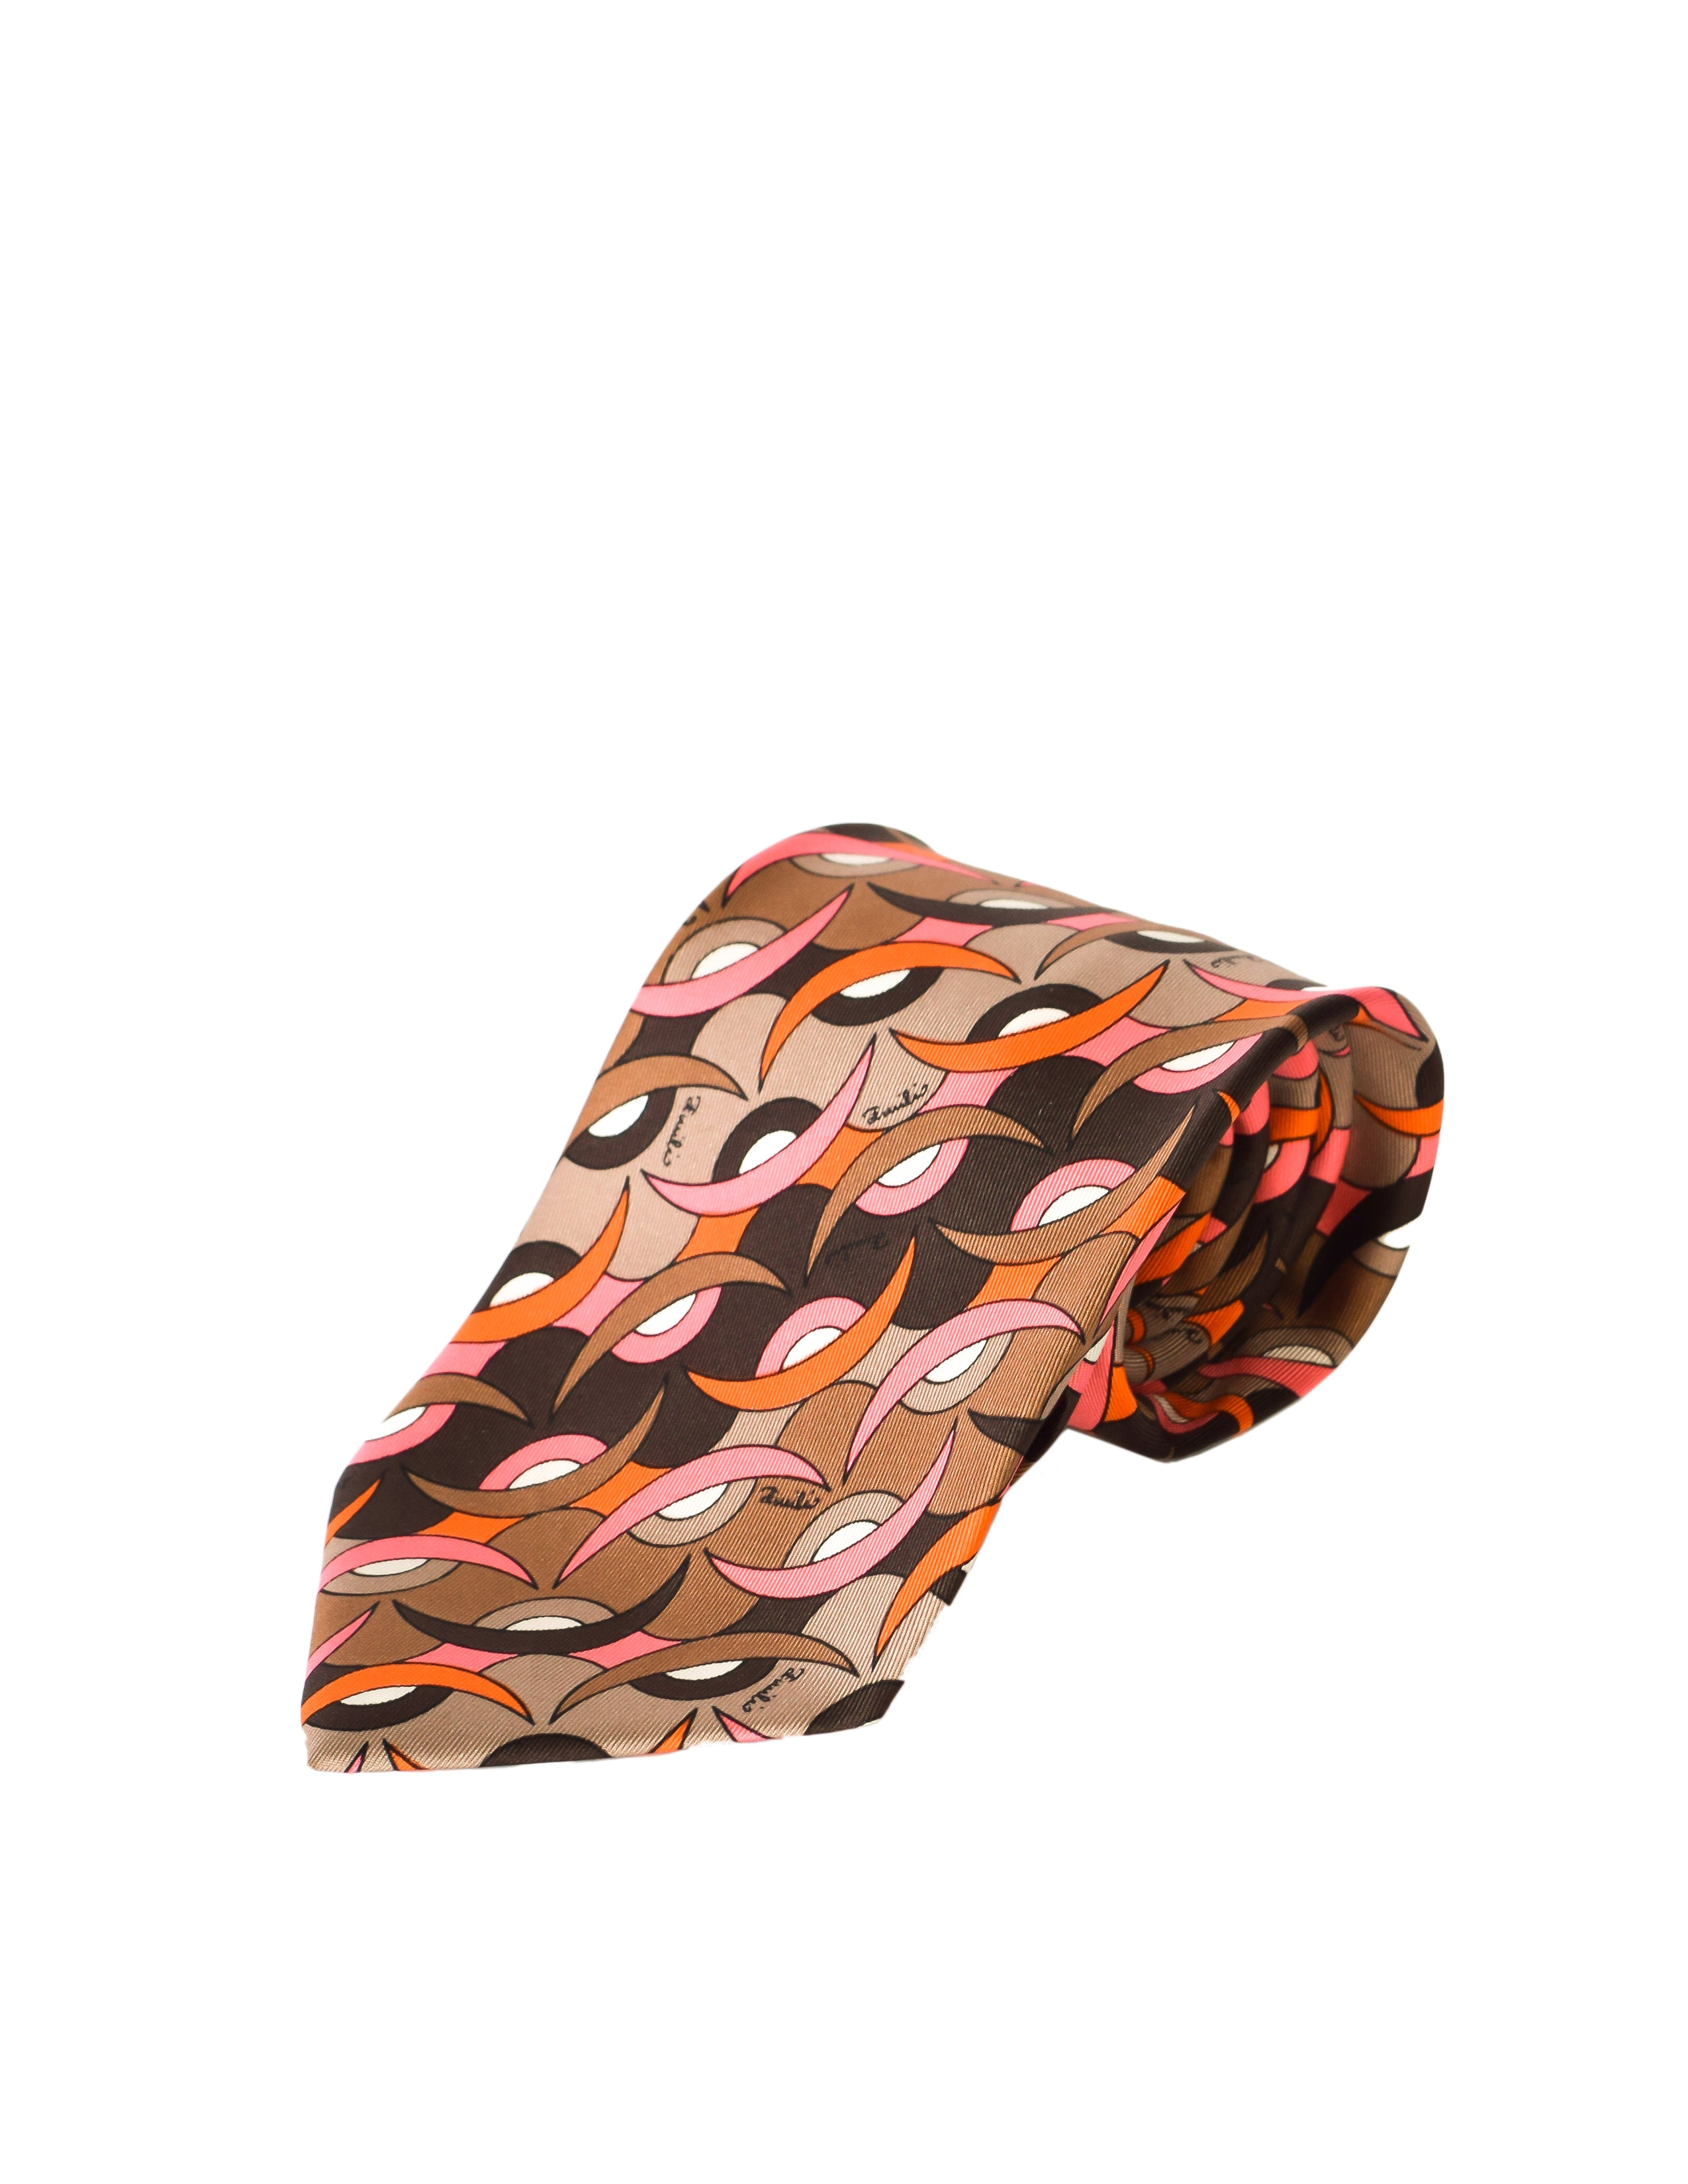 Emilio Pucci Vintage Brown and Pink Mod Graphic Silk Neck Tie